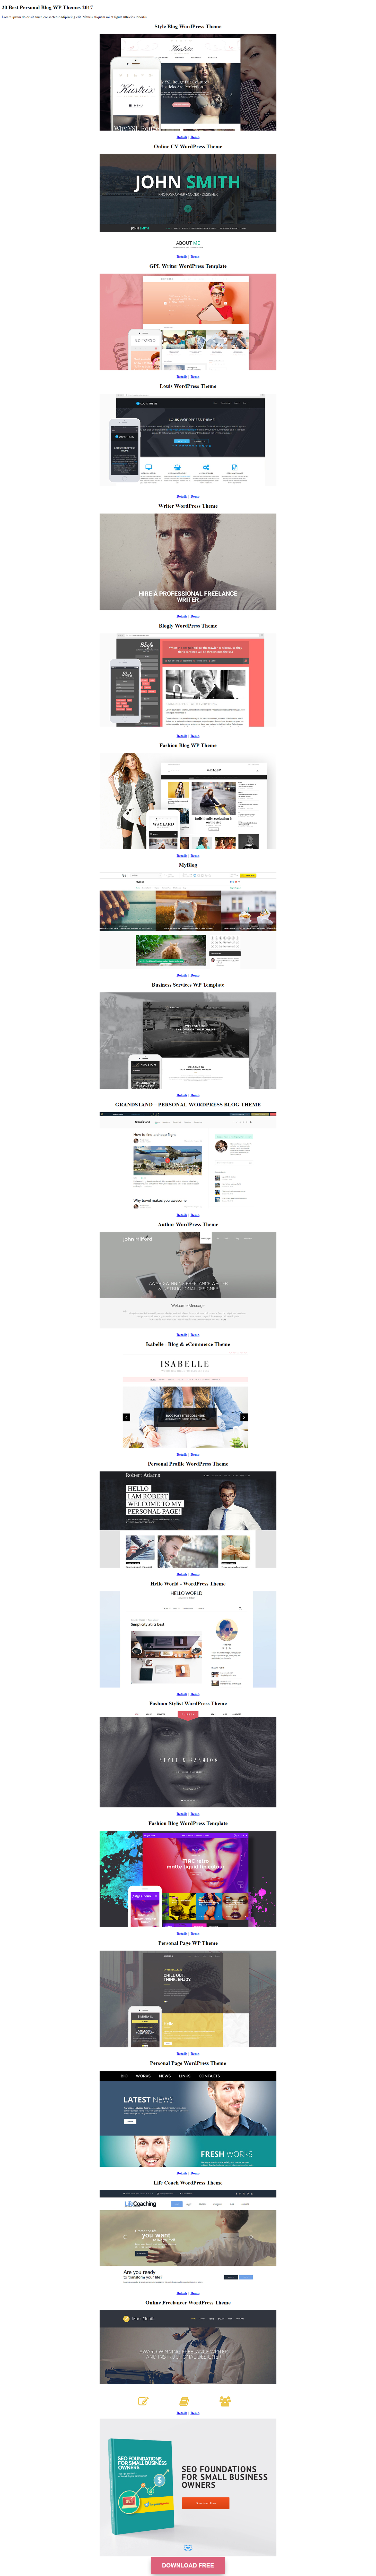 20-Best-Personal-Blog-WP-Themes-2017